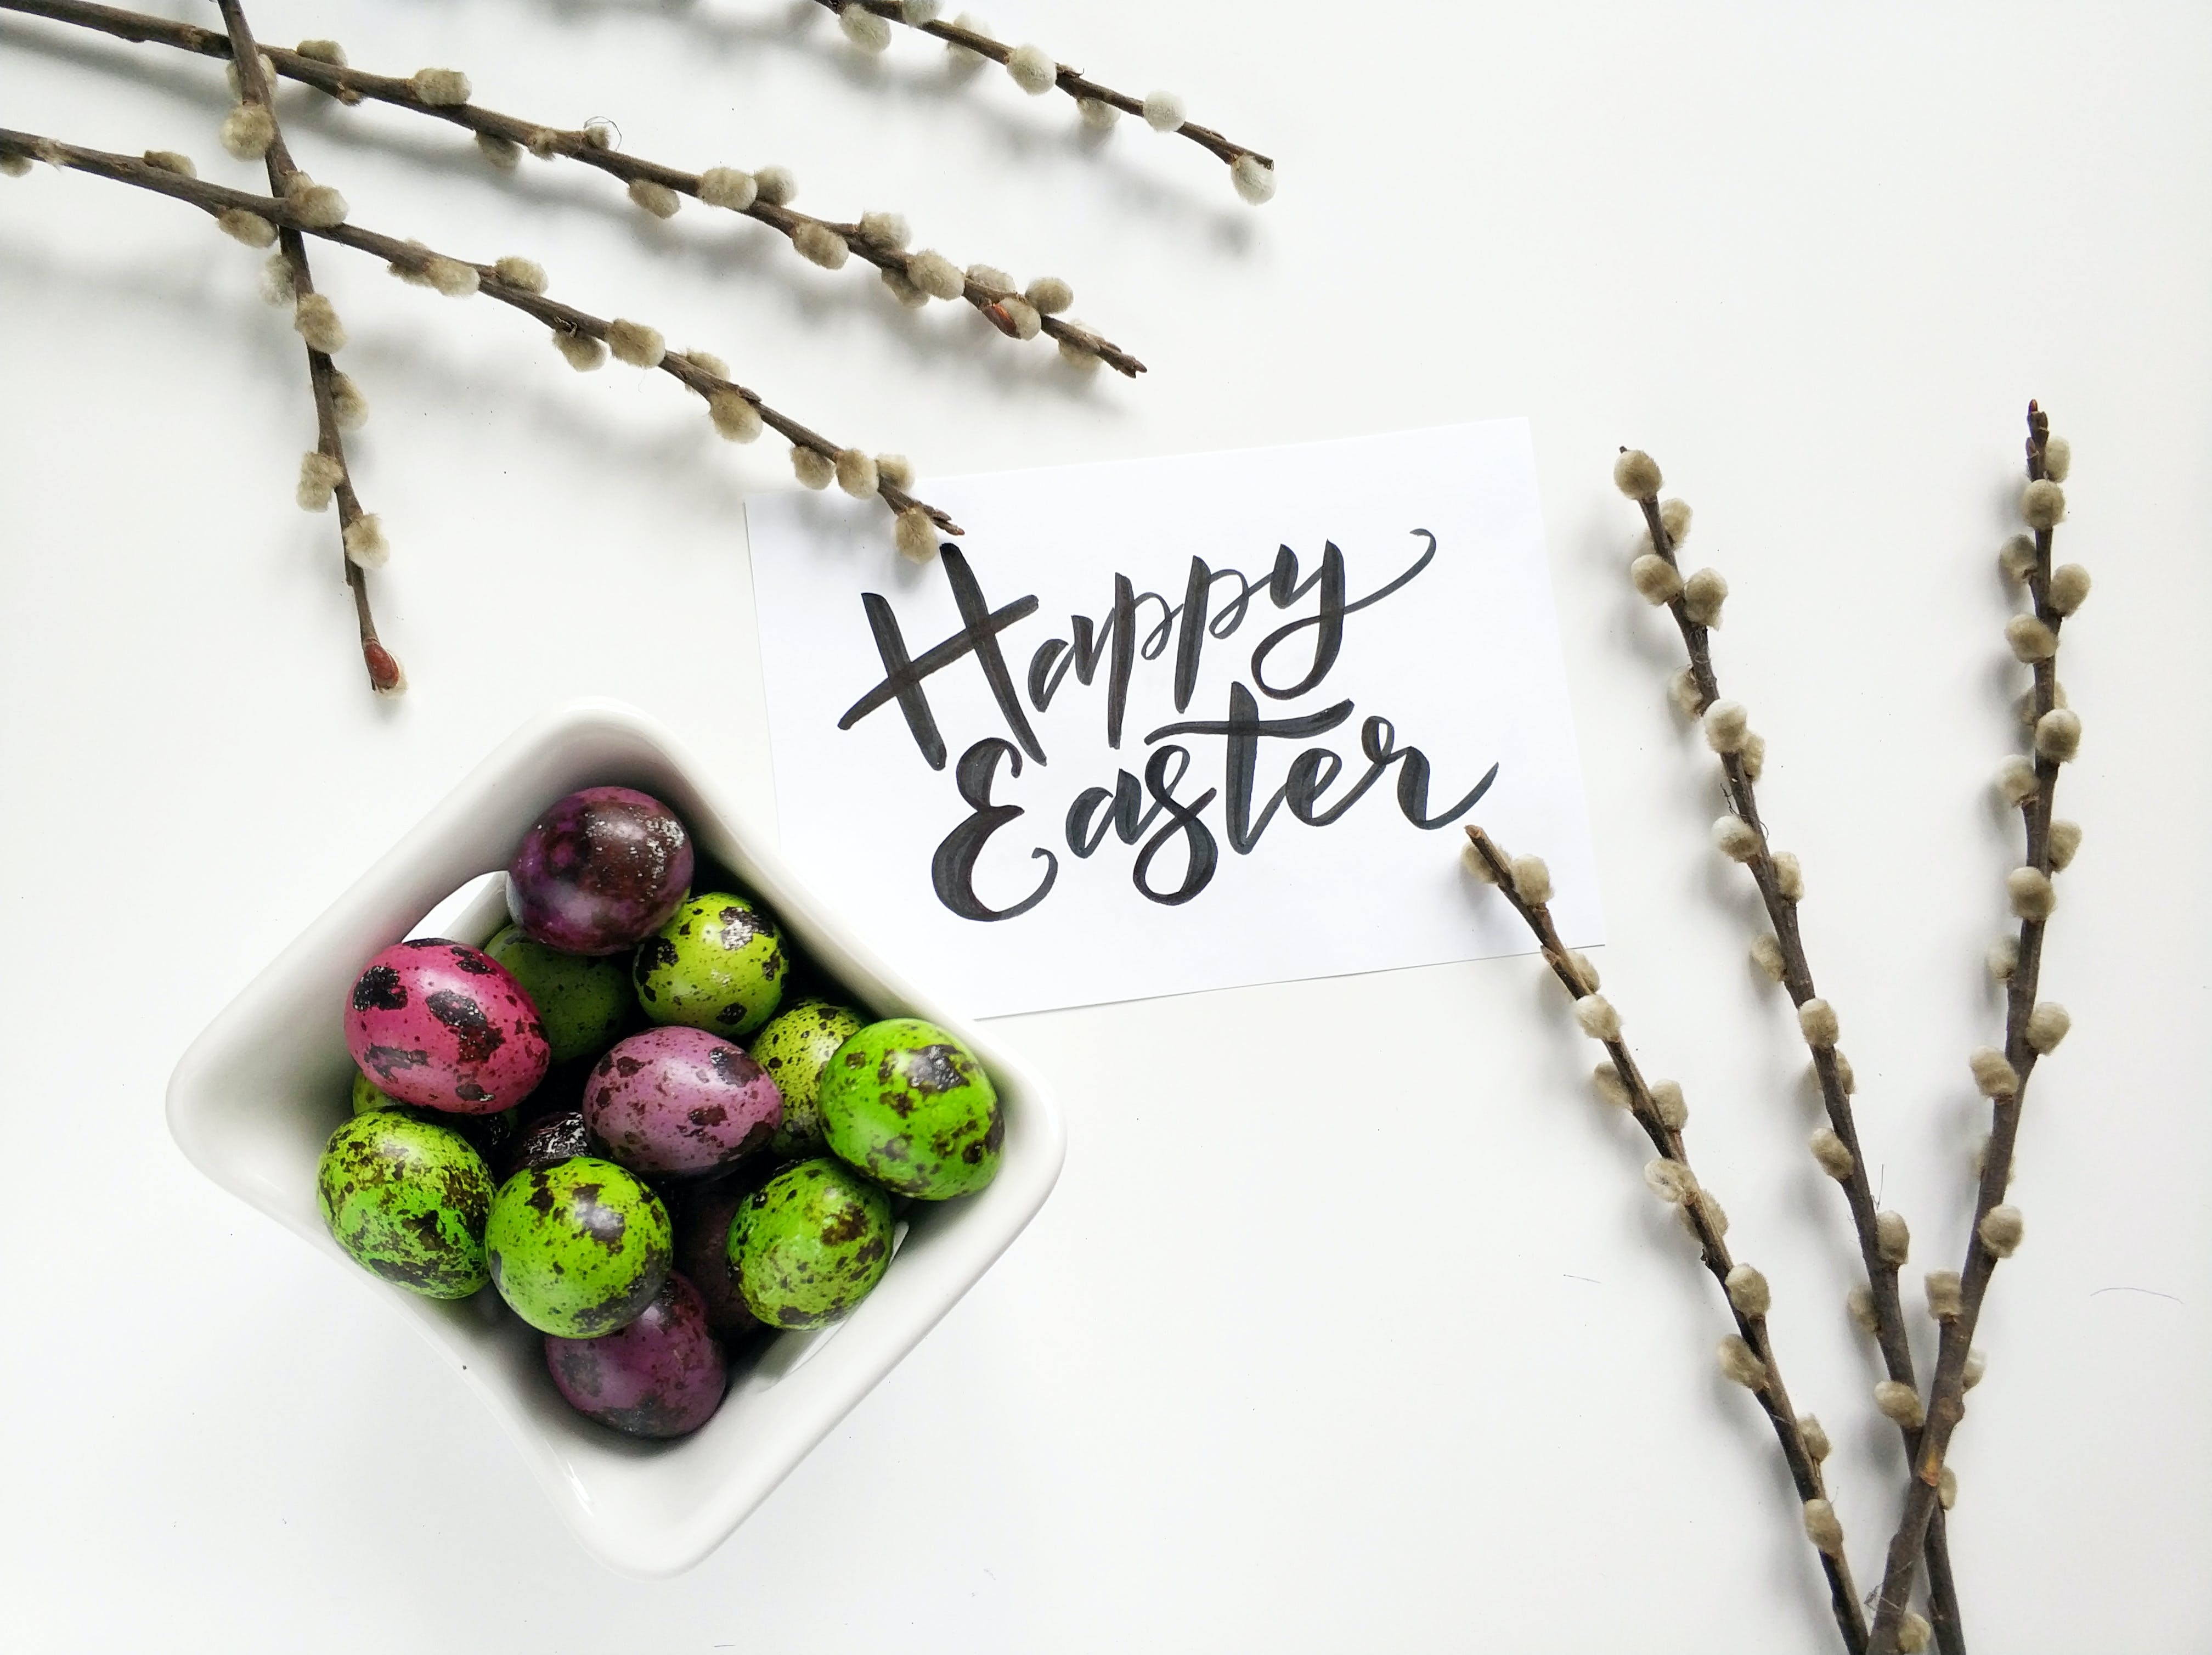 Free stock photo of art, beautiful, boiled eggs, branch